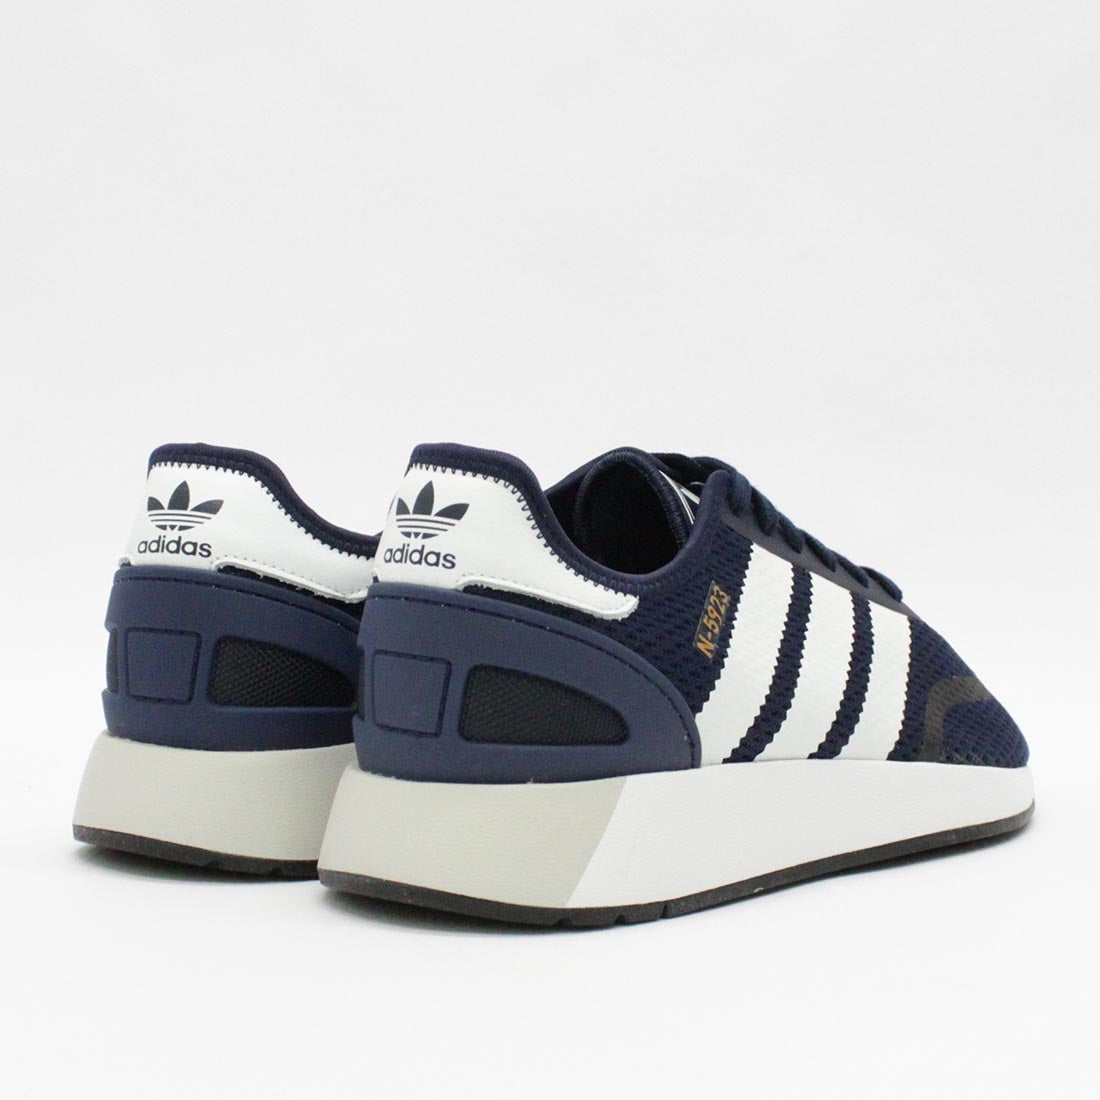 Adidas Originals N-5923 Navy DB0961